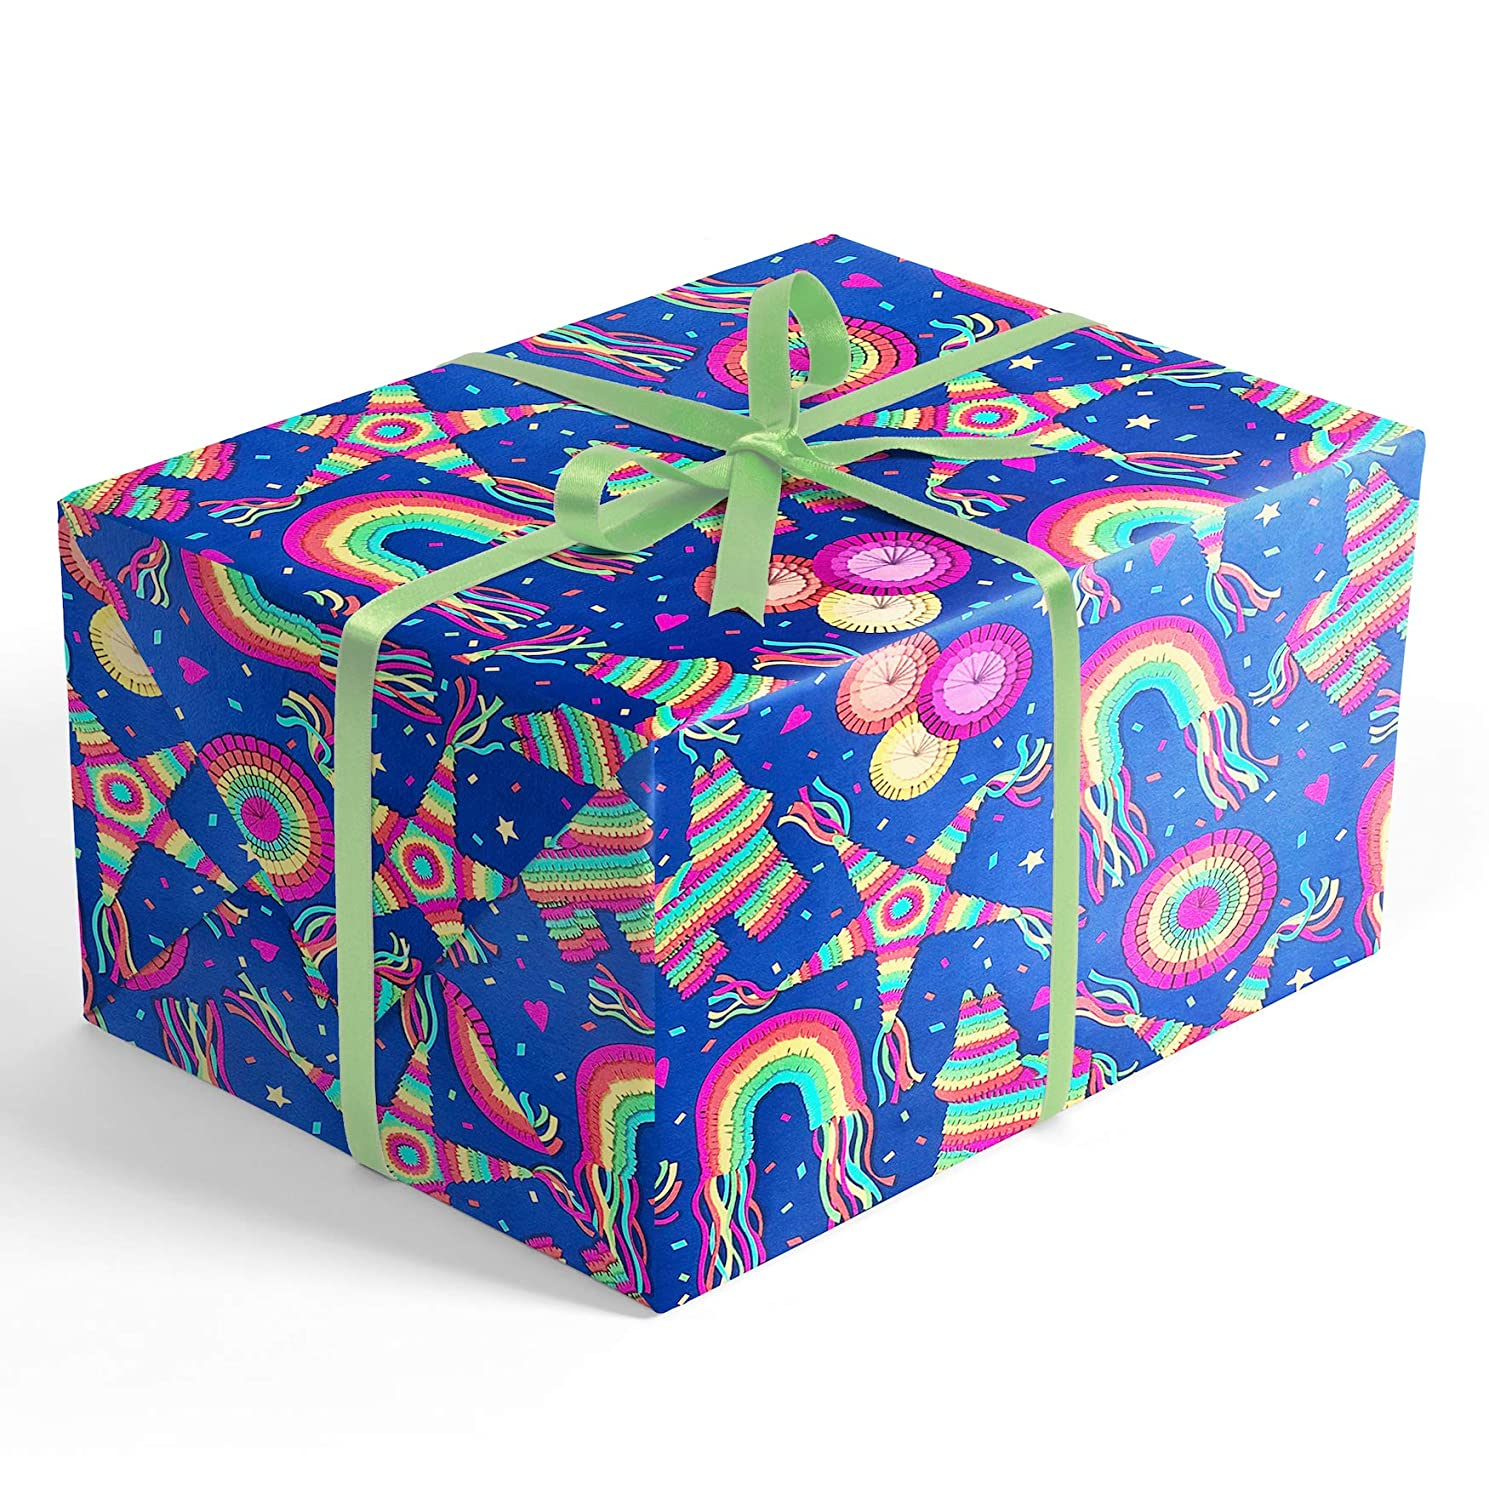 Piñata Fiesta Feliz Cumpleaños Rolled Wrapping Paper, 2 feet x 20 feet Premium Gift wrap with...